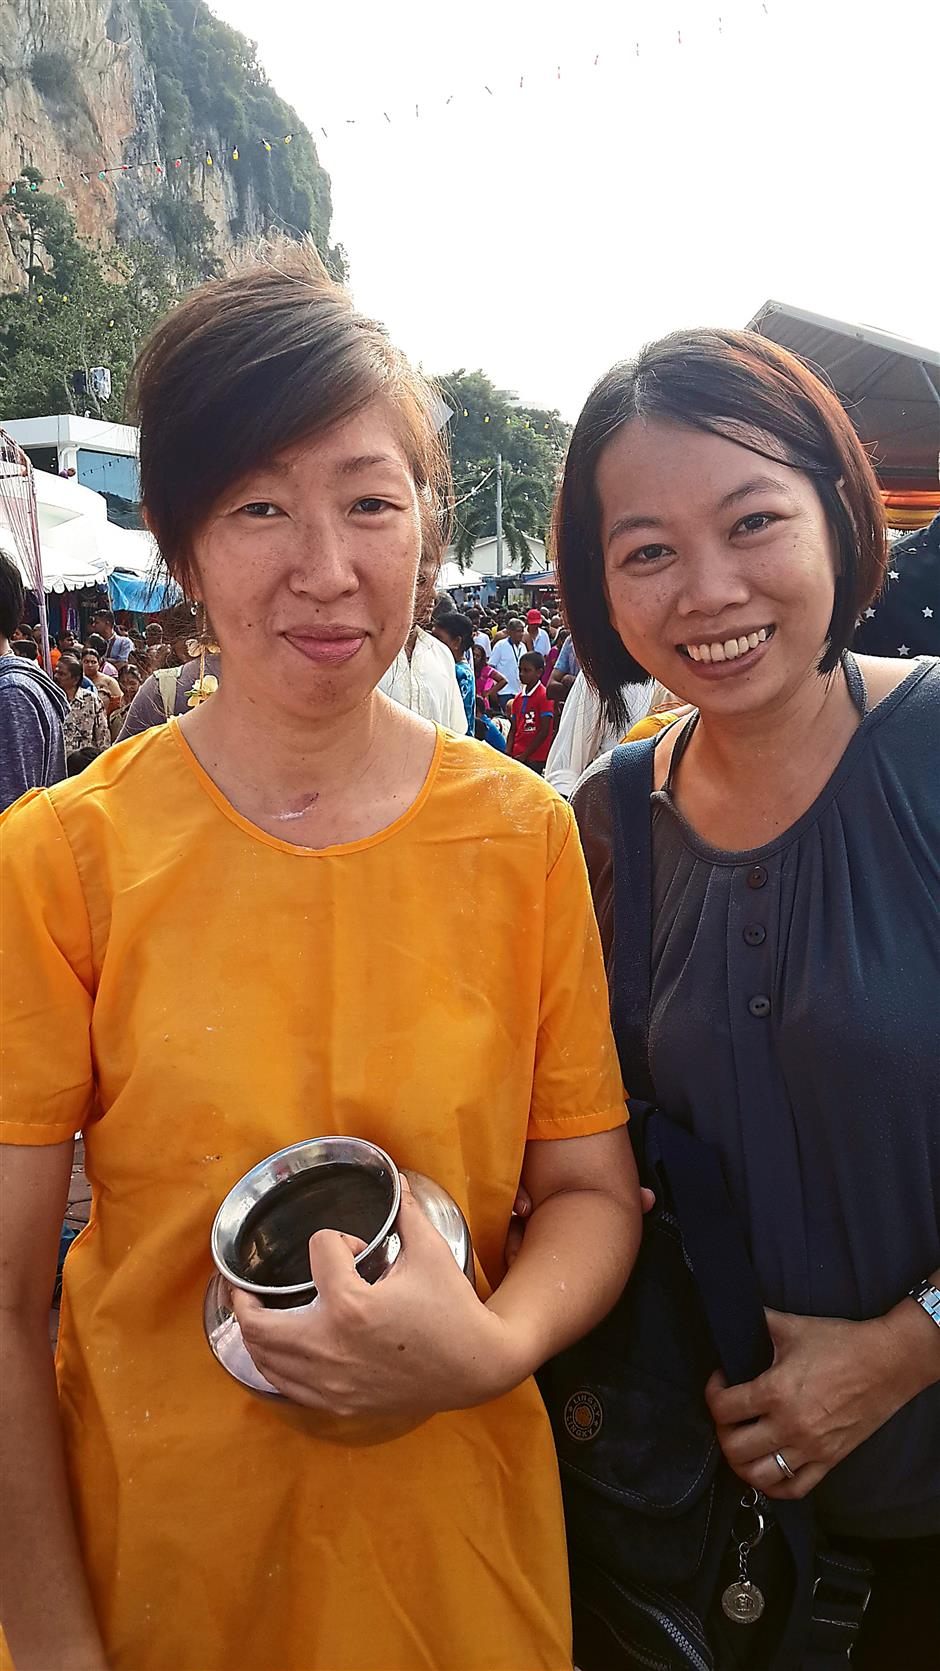 A test of faith: Molly Tan (left) and Tania Wong after their journey up the 272 steps to offer 'paal kudam' to Lord Murugan for their first time.